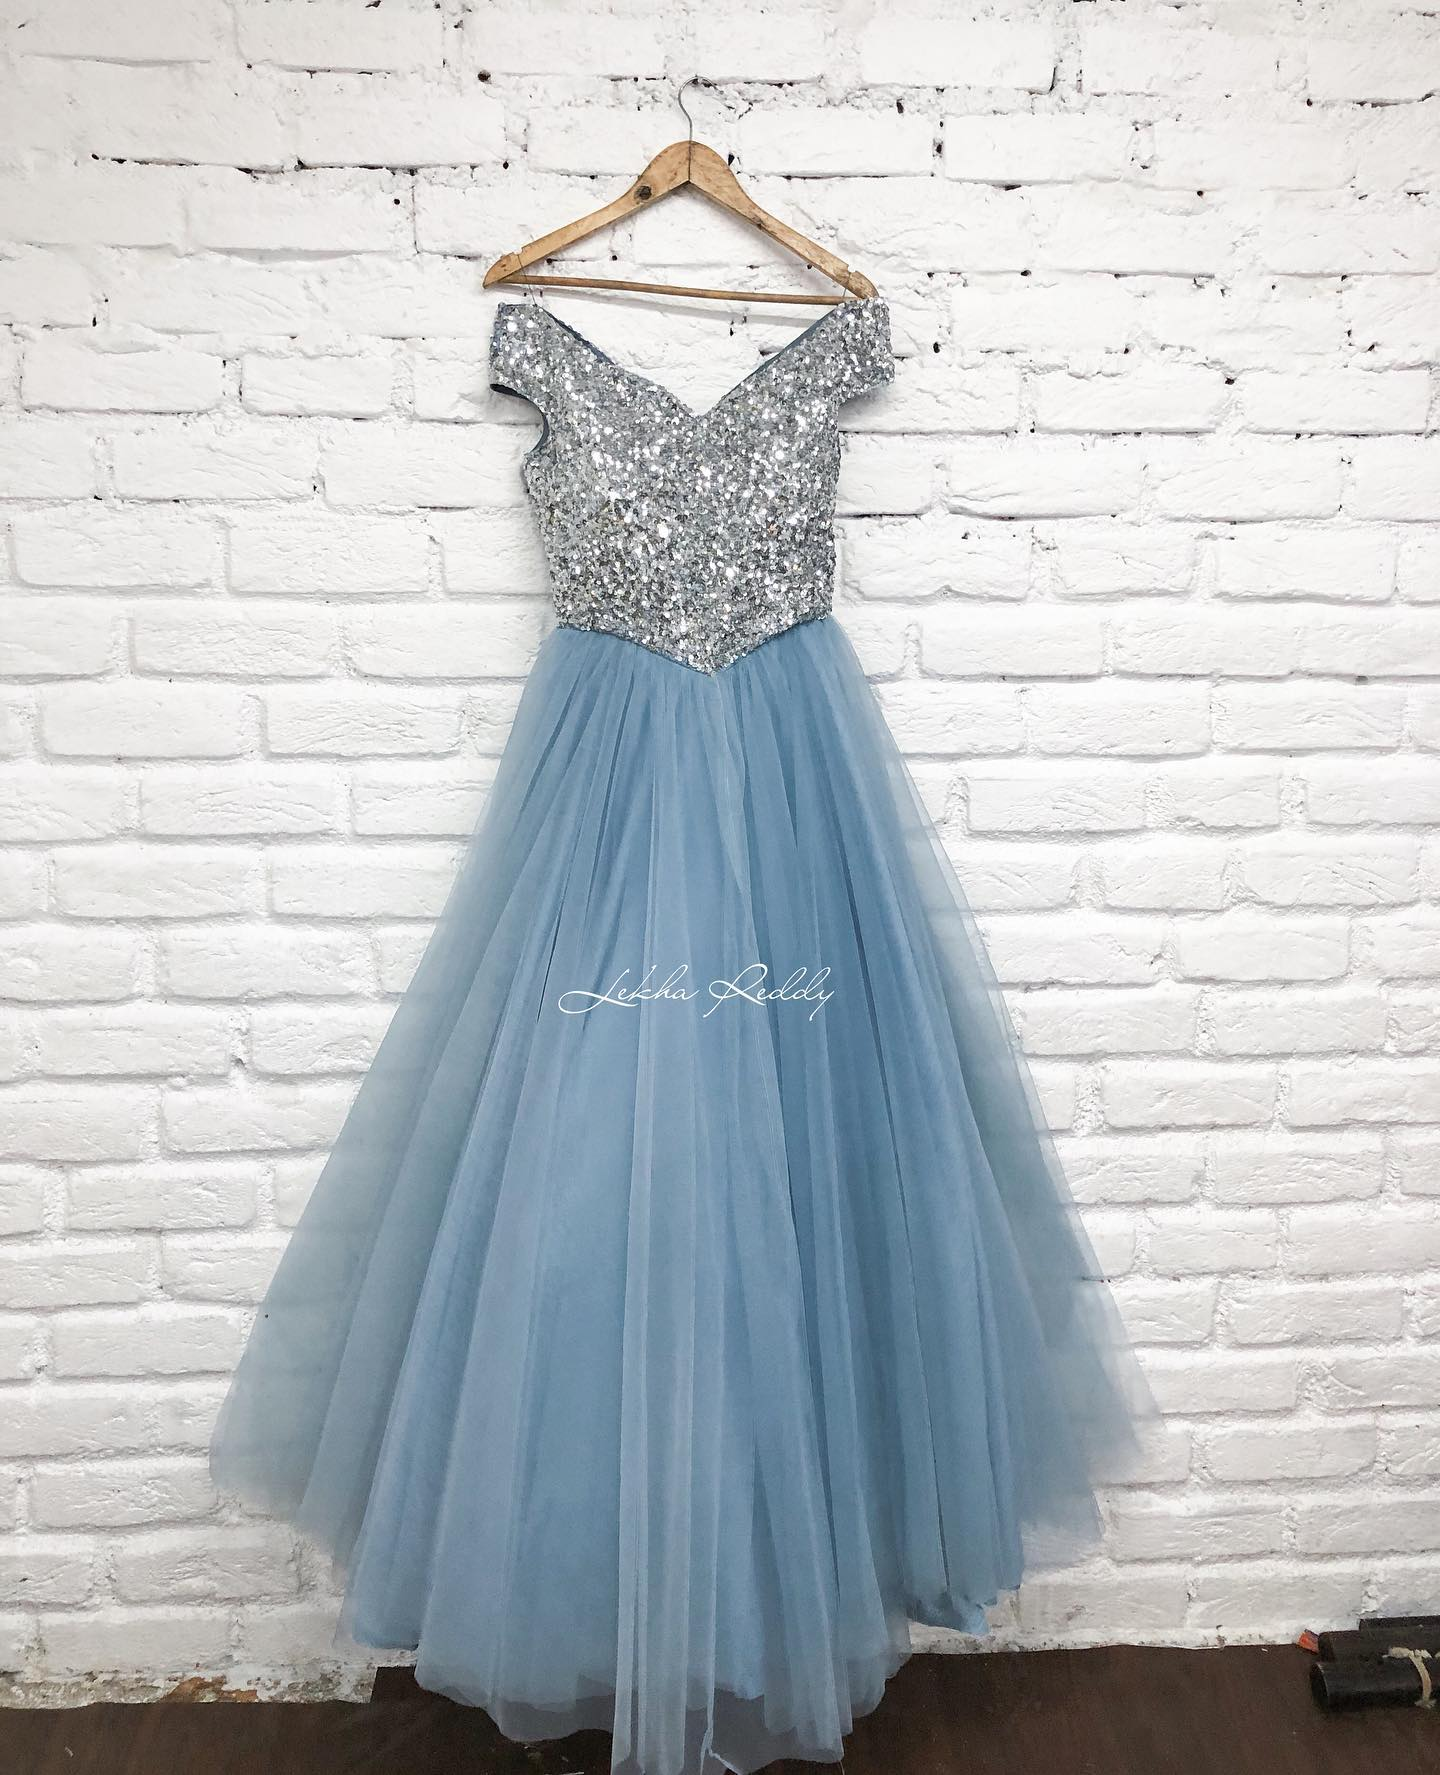 Stunning ice blue gown with hand sequenced bodice..!! . . P.s : Customization as per ur requirement can be done 2021-09-29